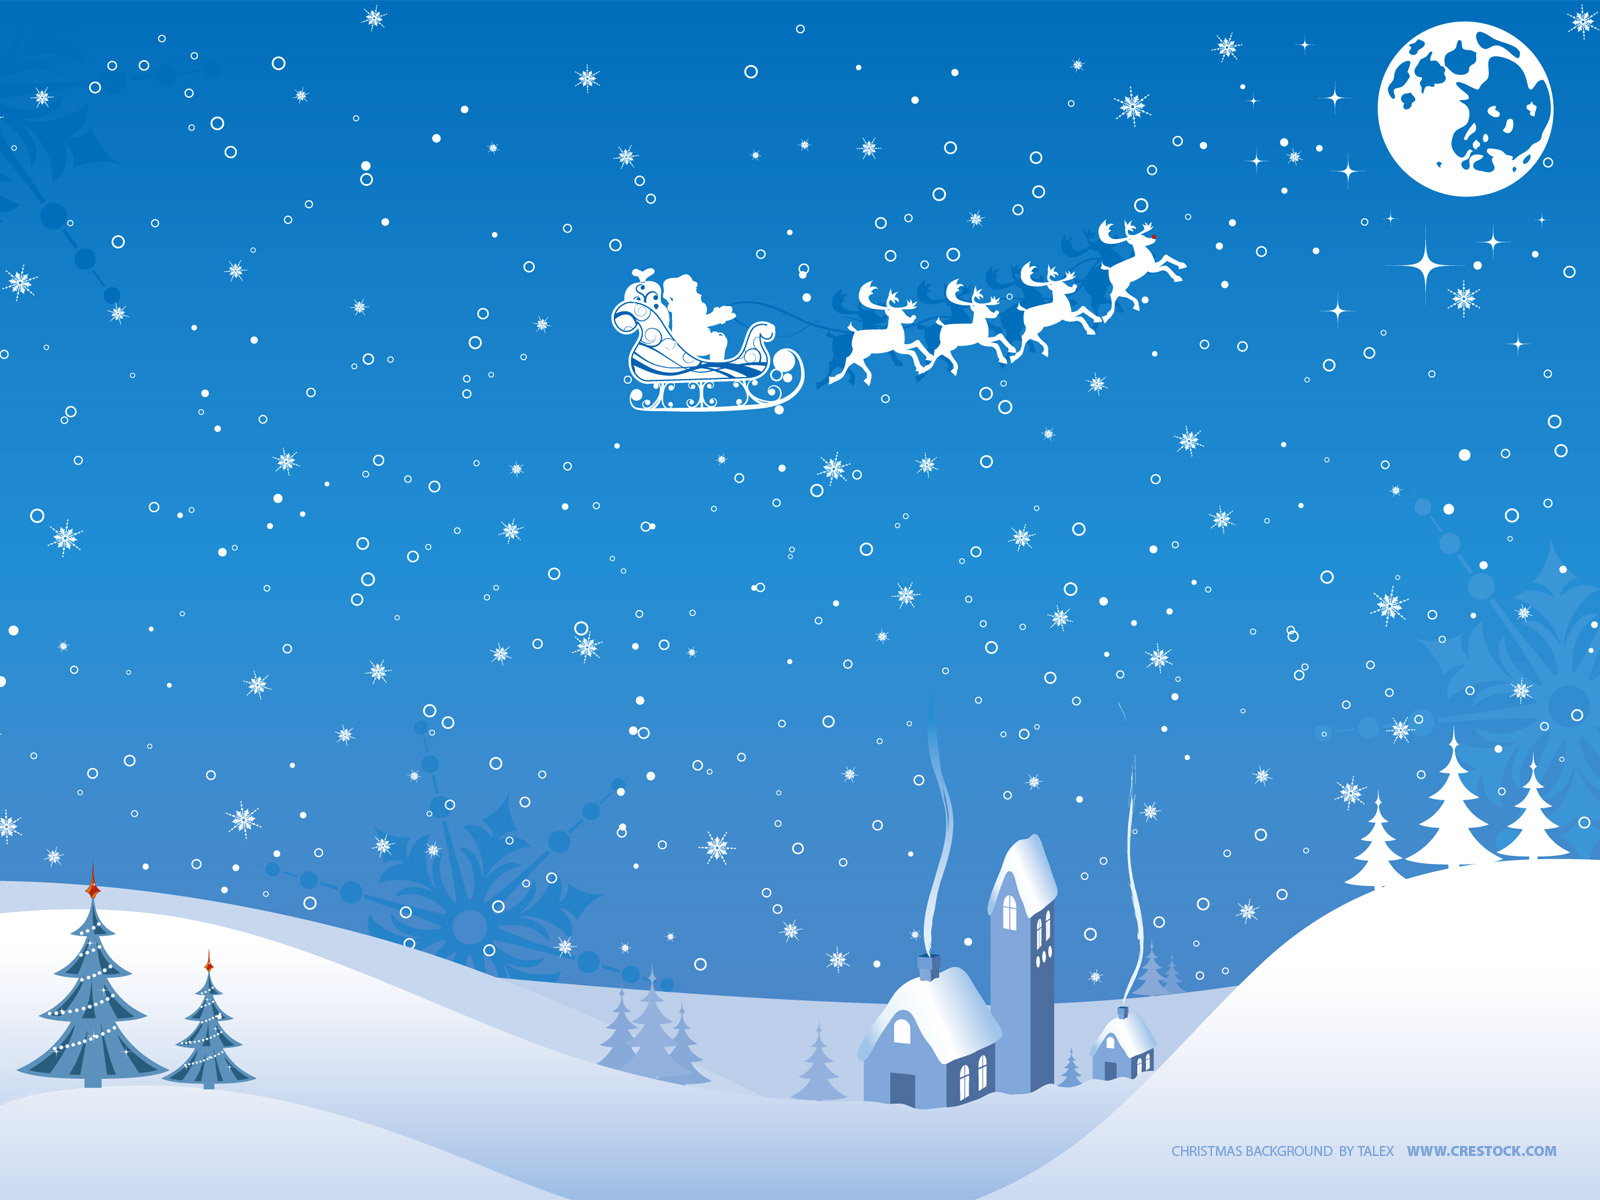 Cool christmas wallpapers   SF Wallpaper 1600x1200